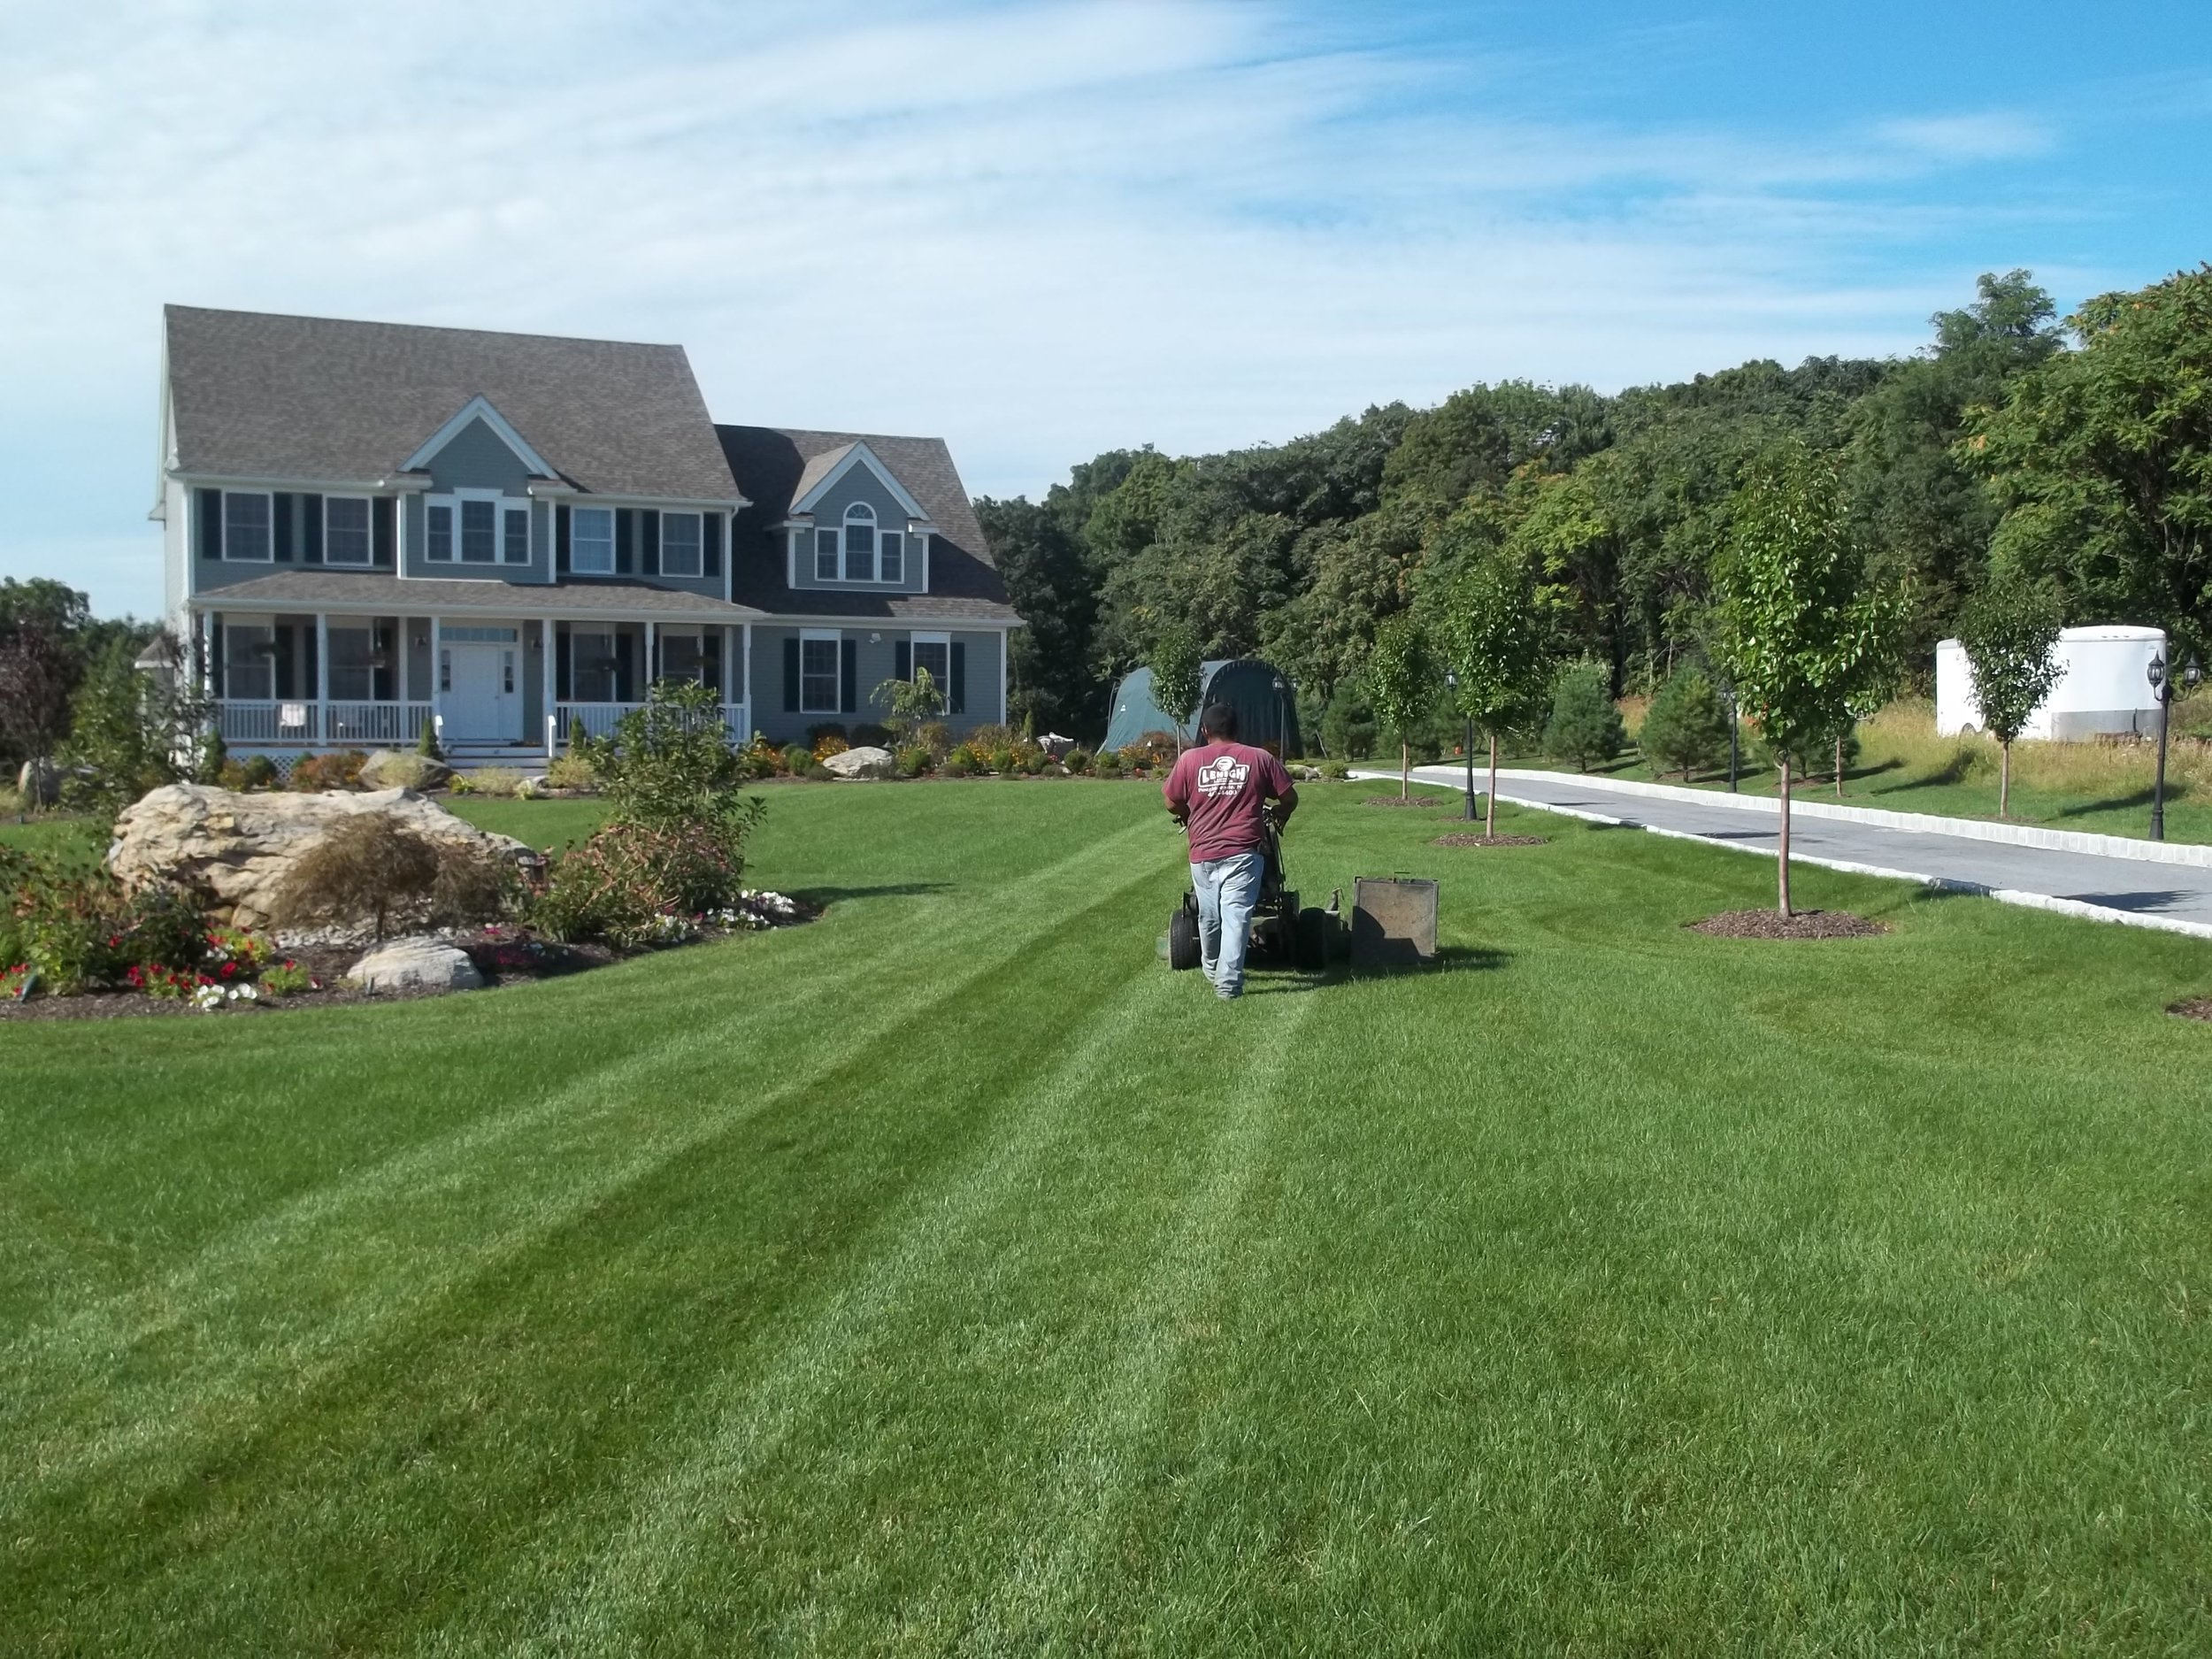 Fullsize Of Big Country Lawn And Landscape